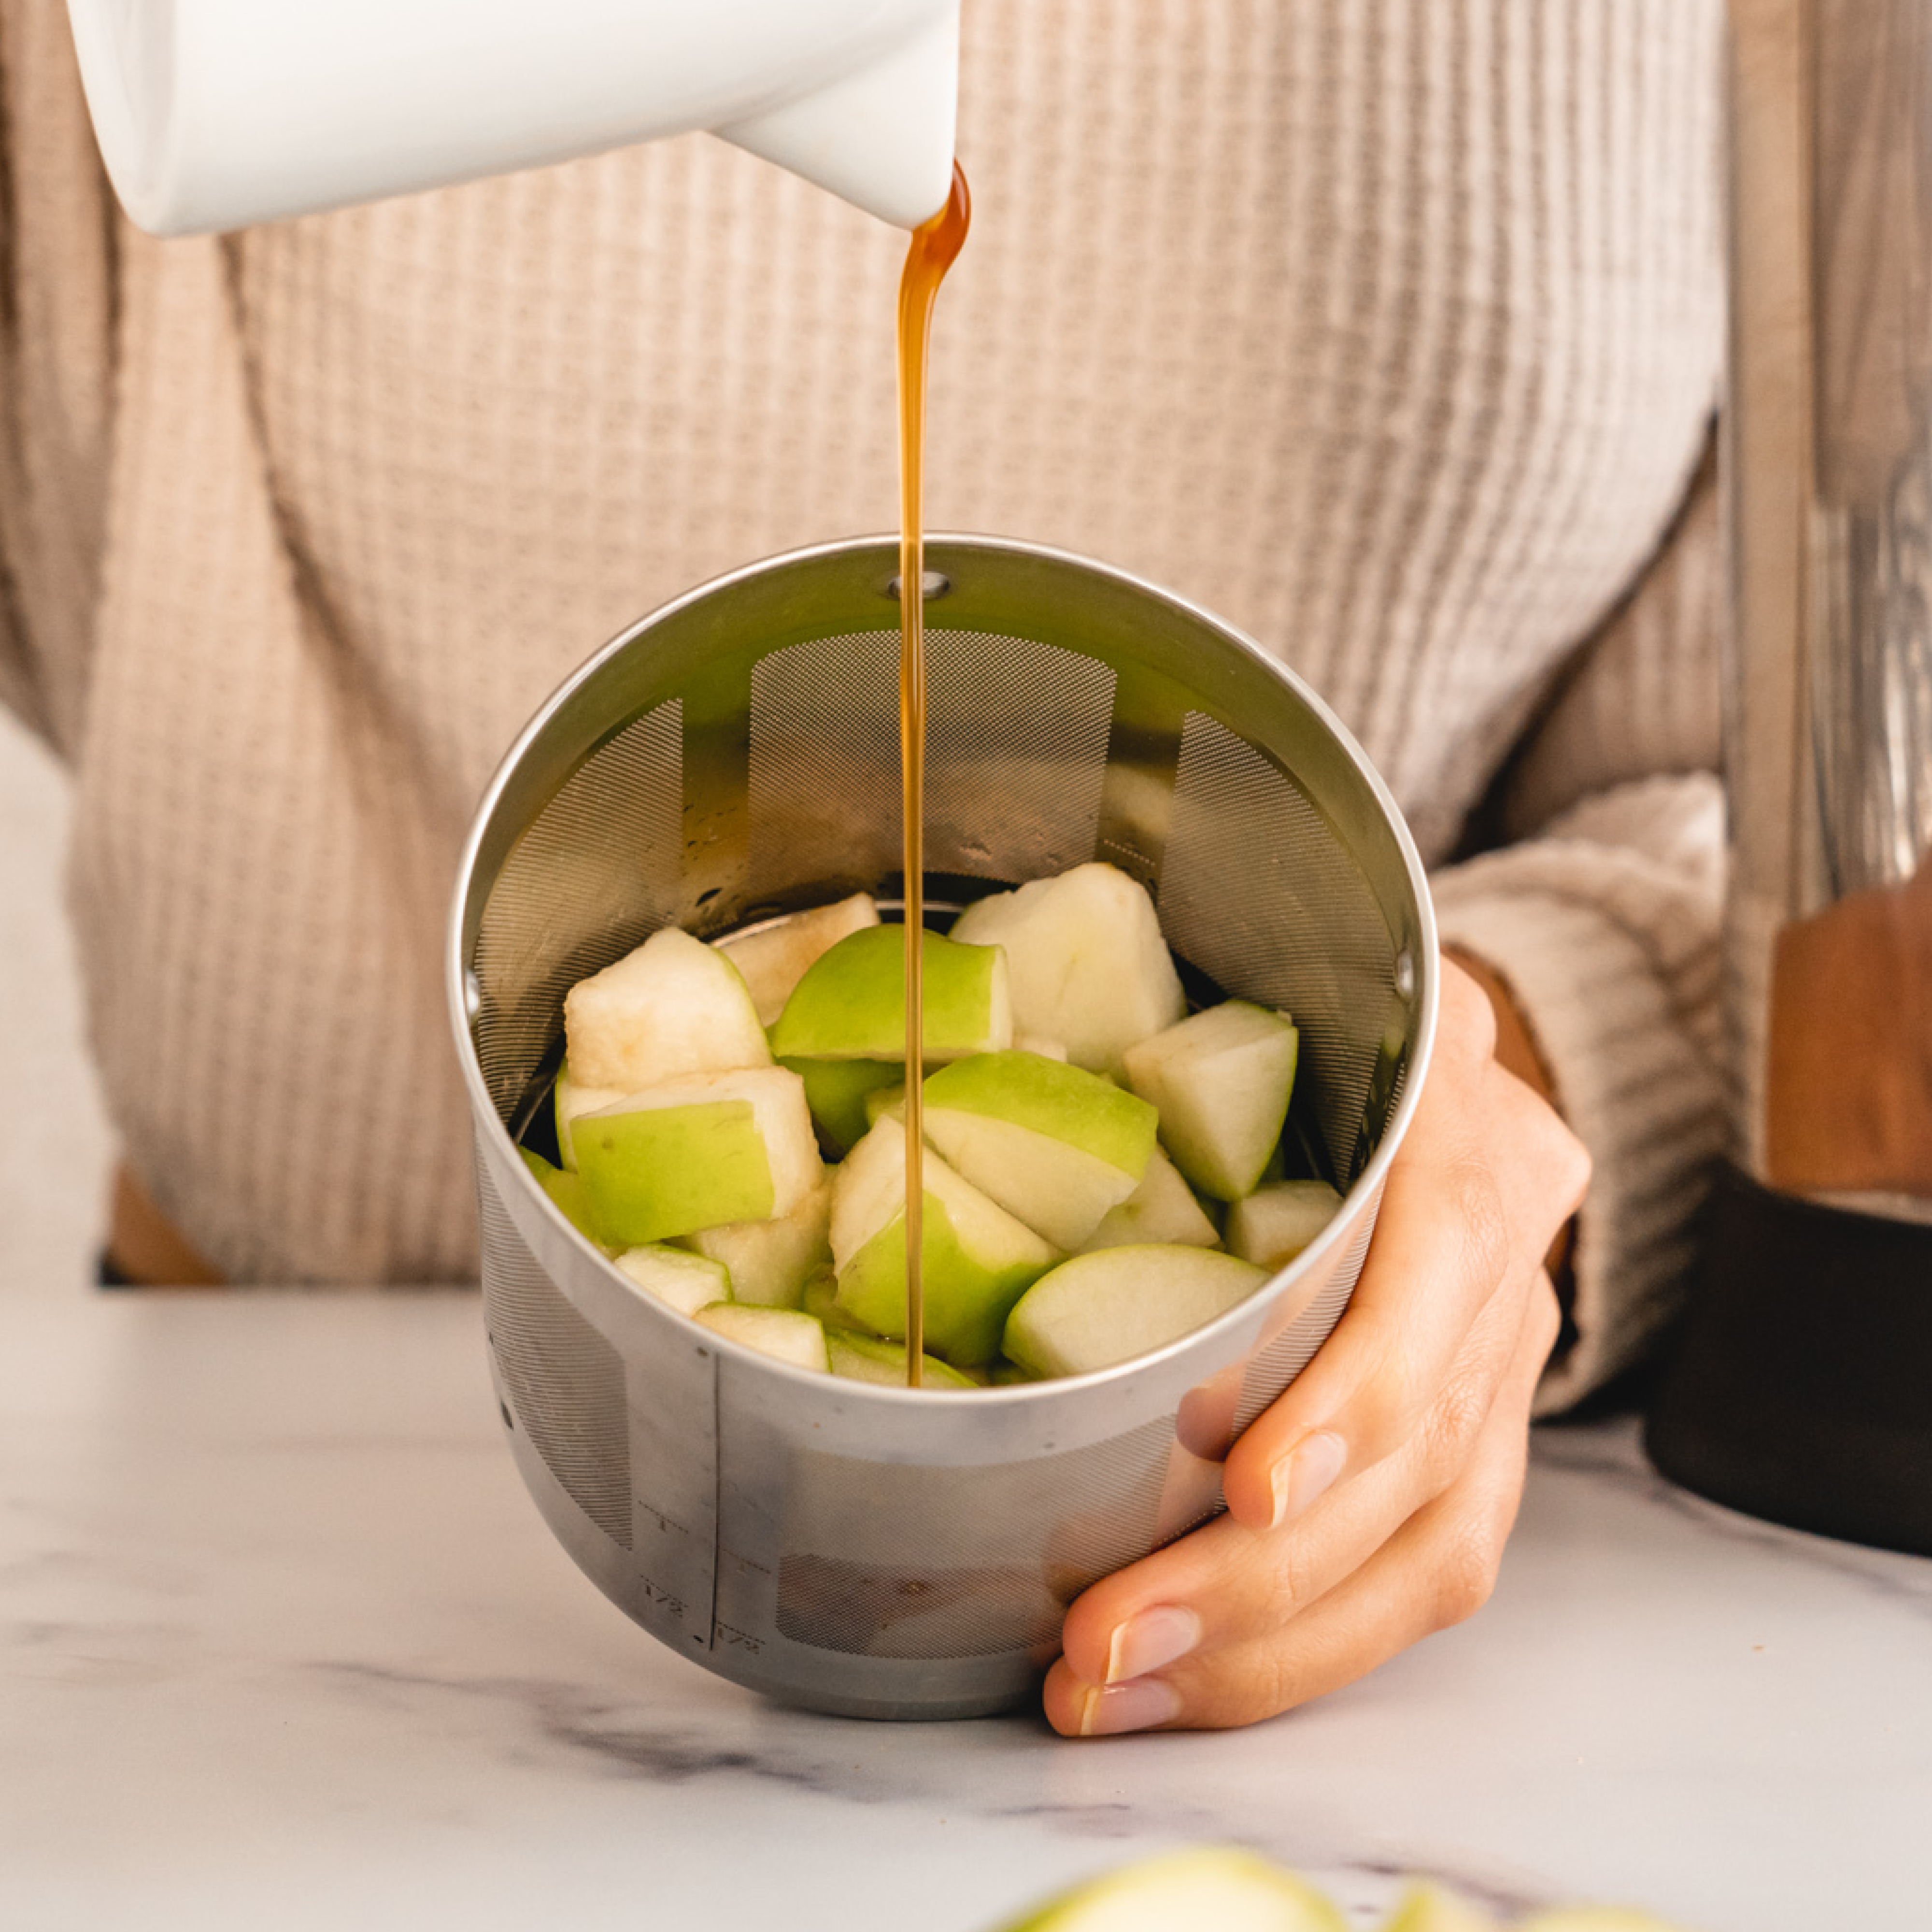 apples in a filter basket with vegan caramel being poured